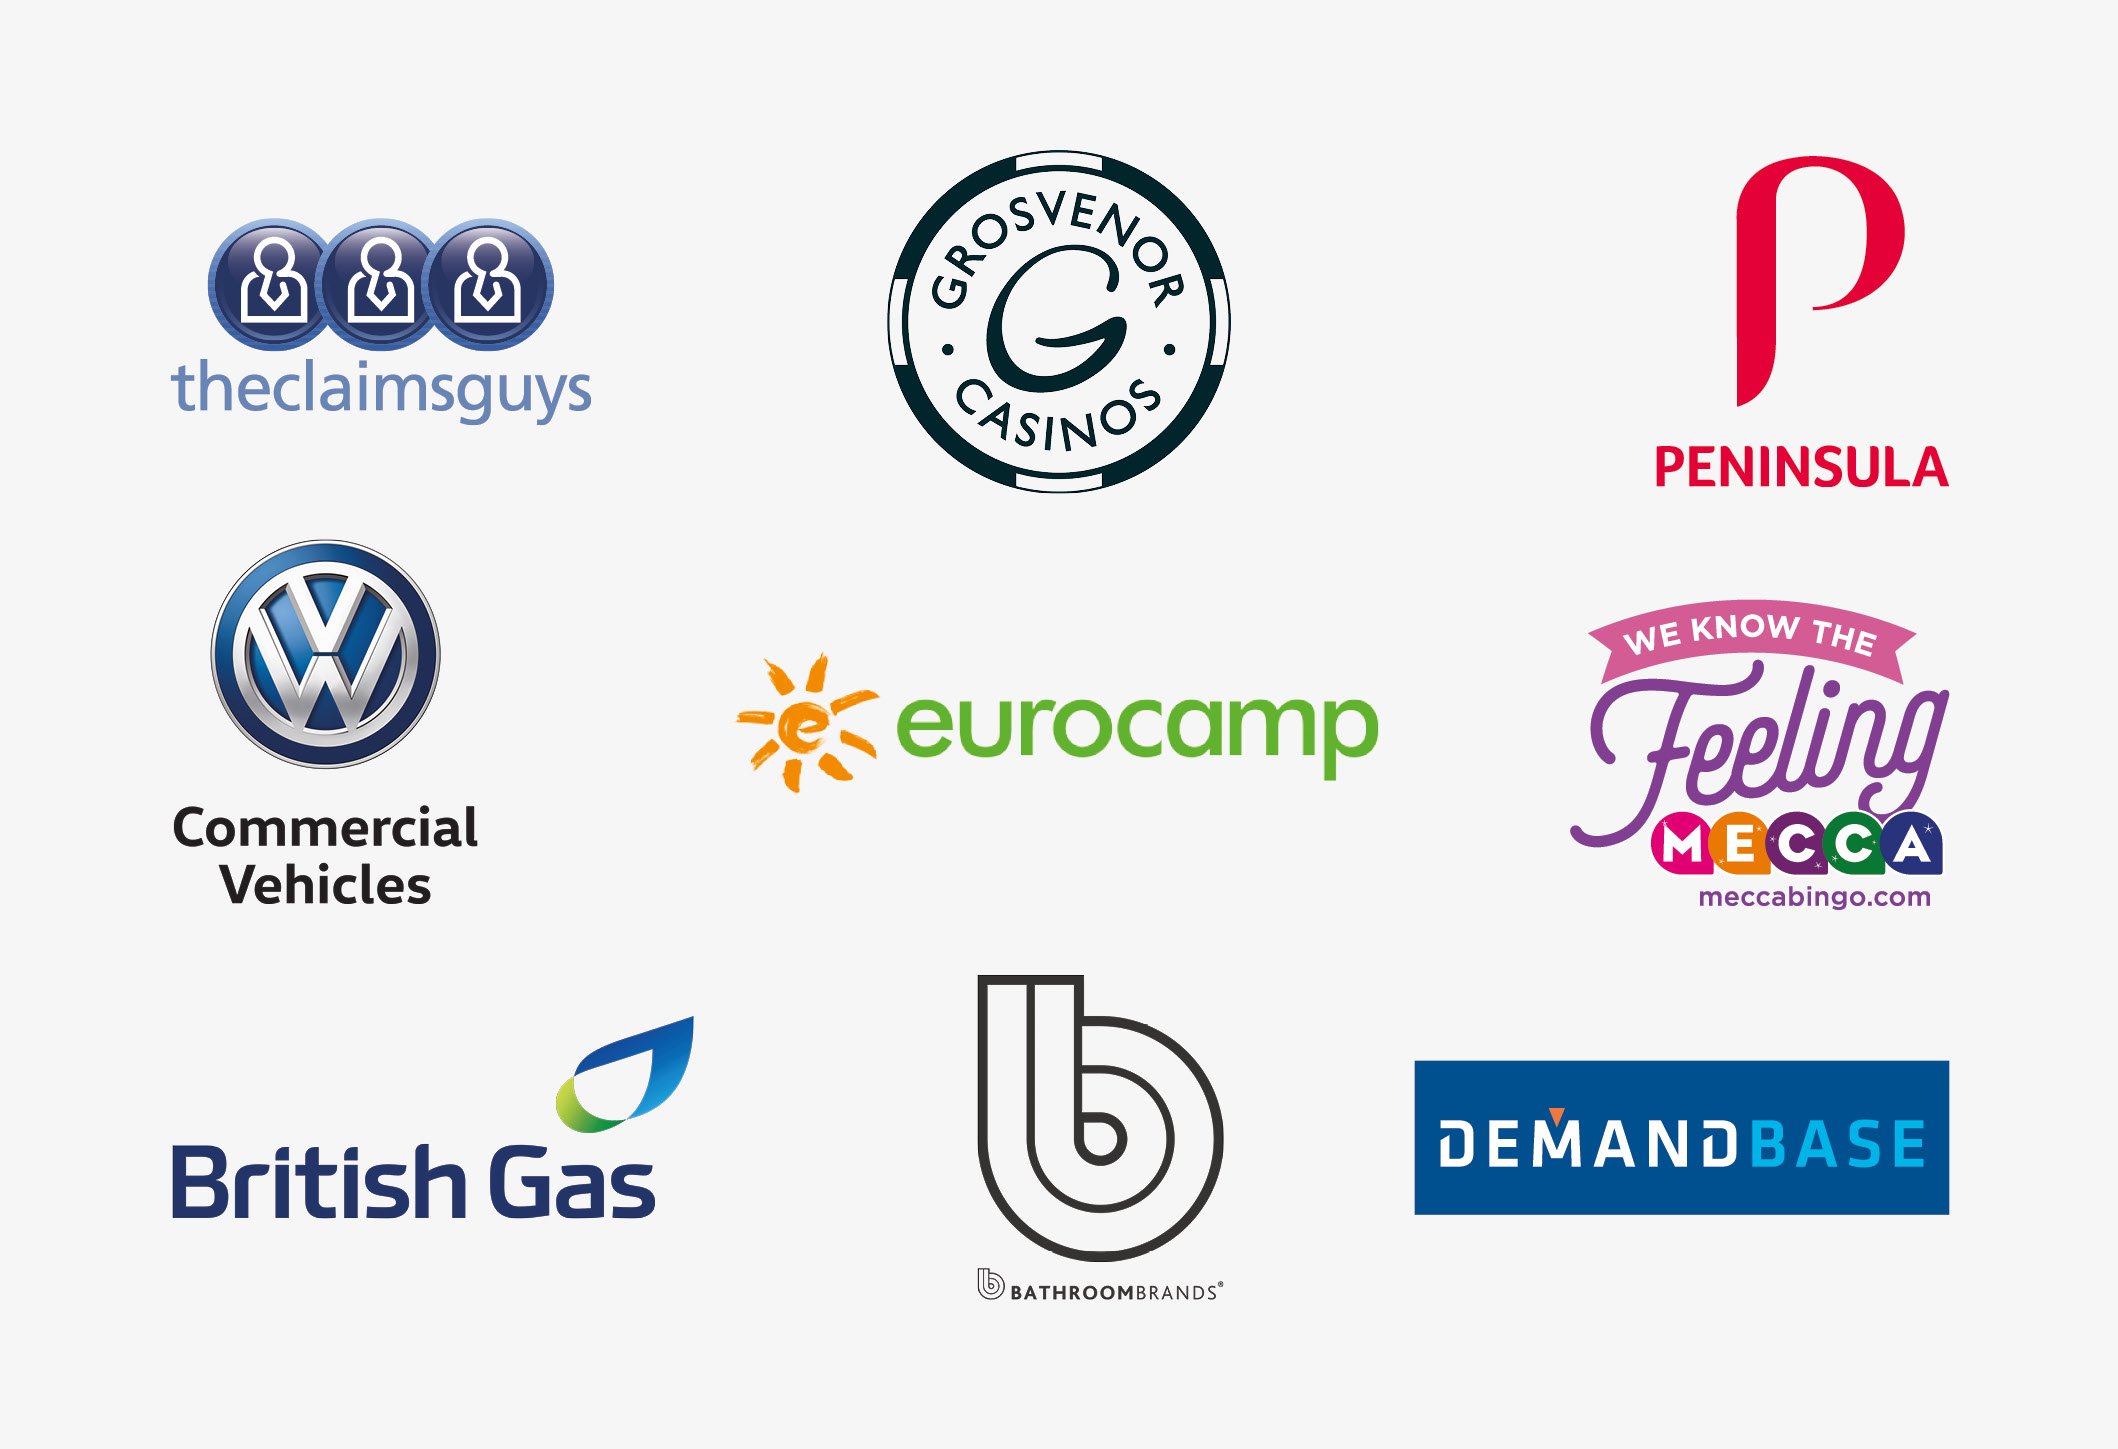 Who we work with - Take a look at some of the clients we work with